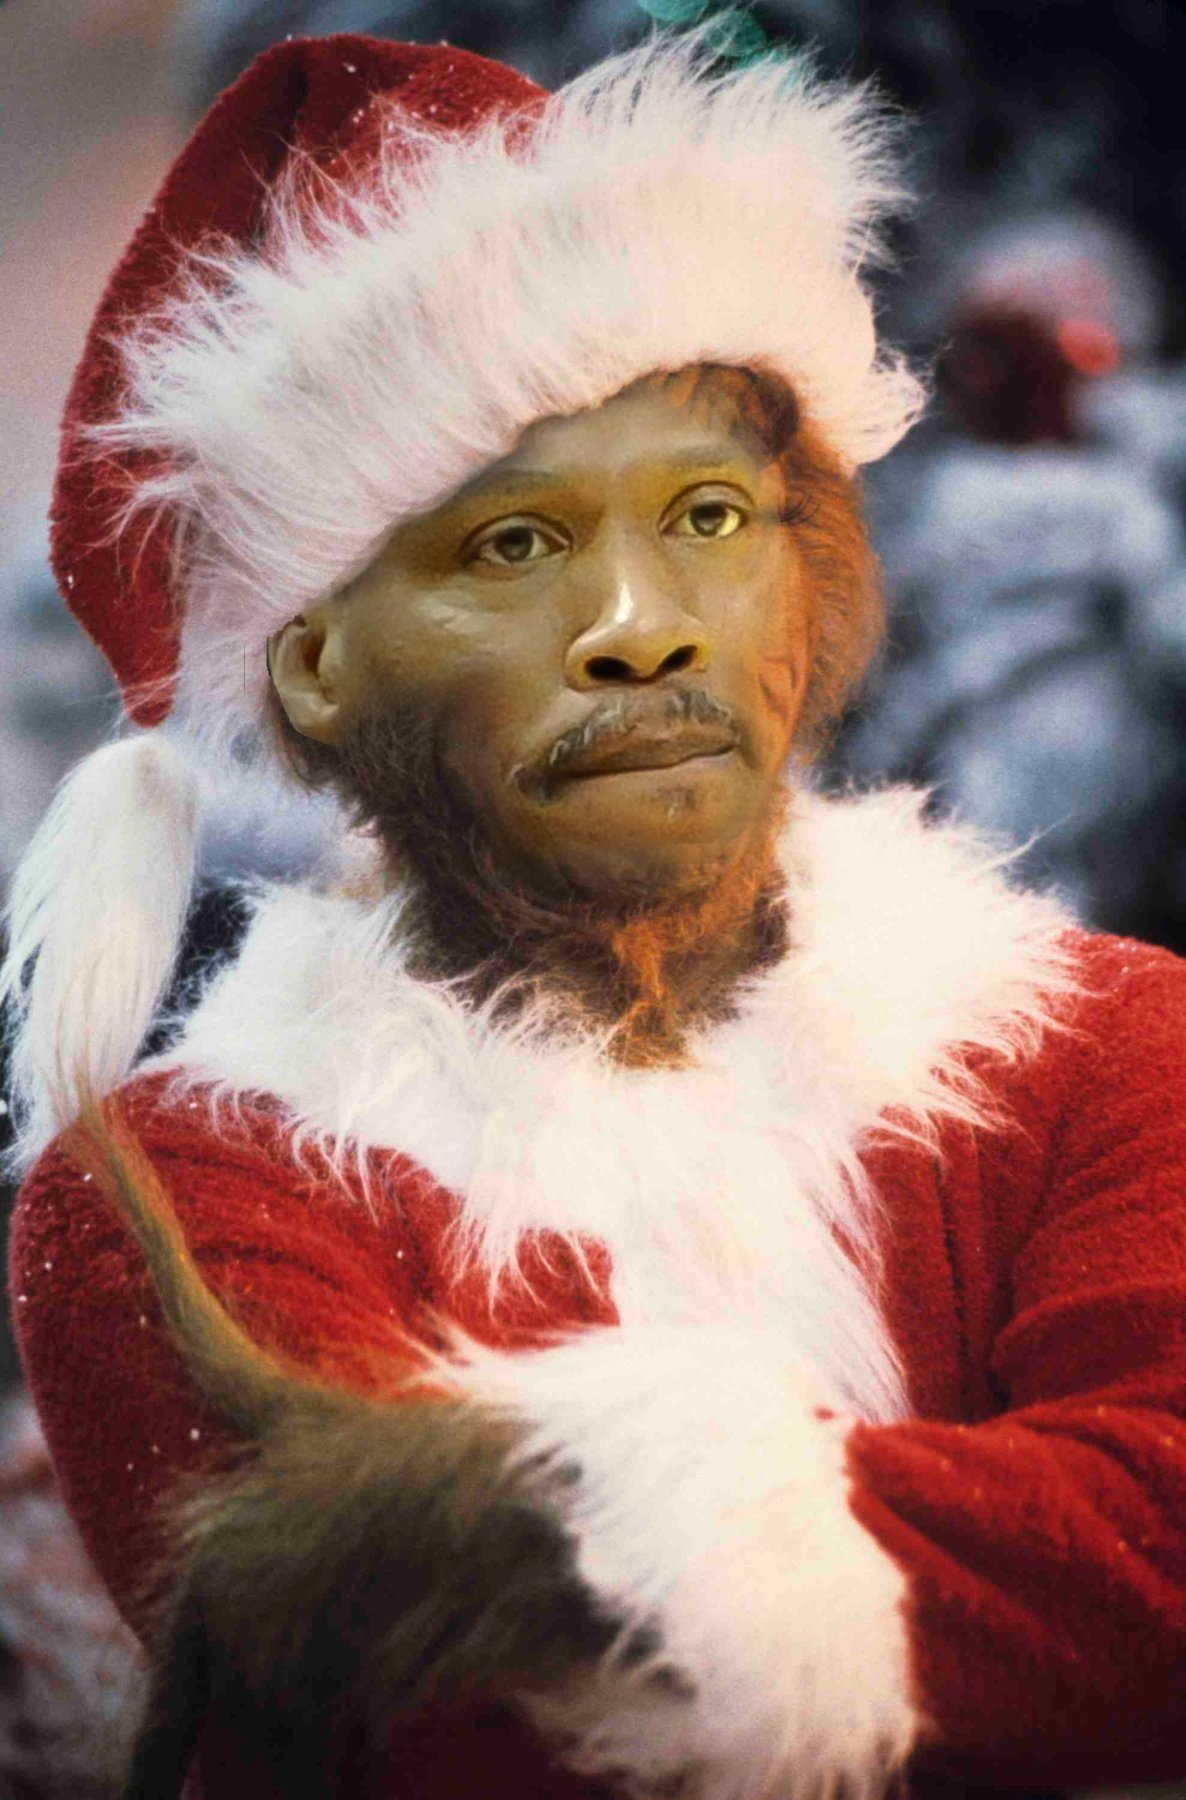 You're a mean one, Byron Scott.